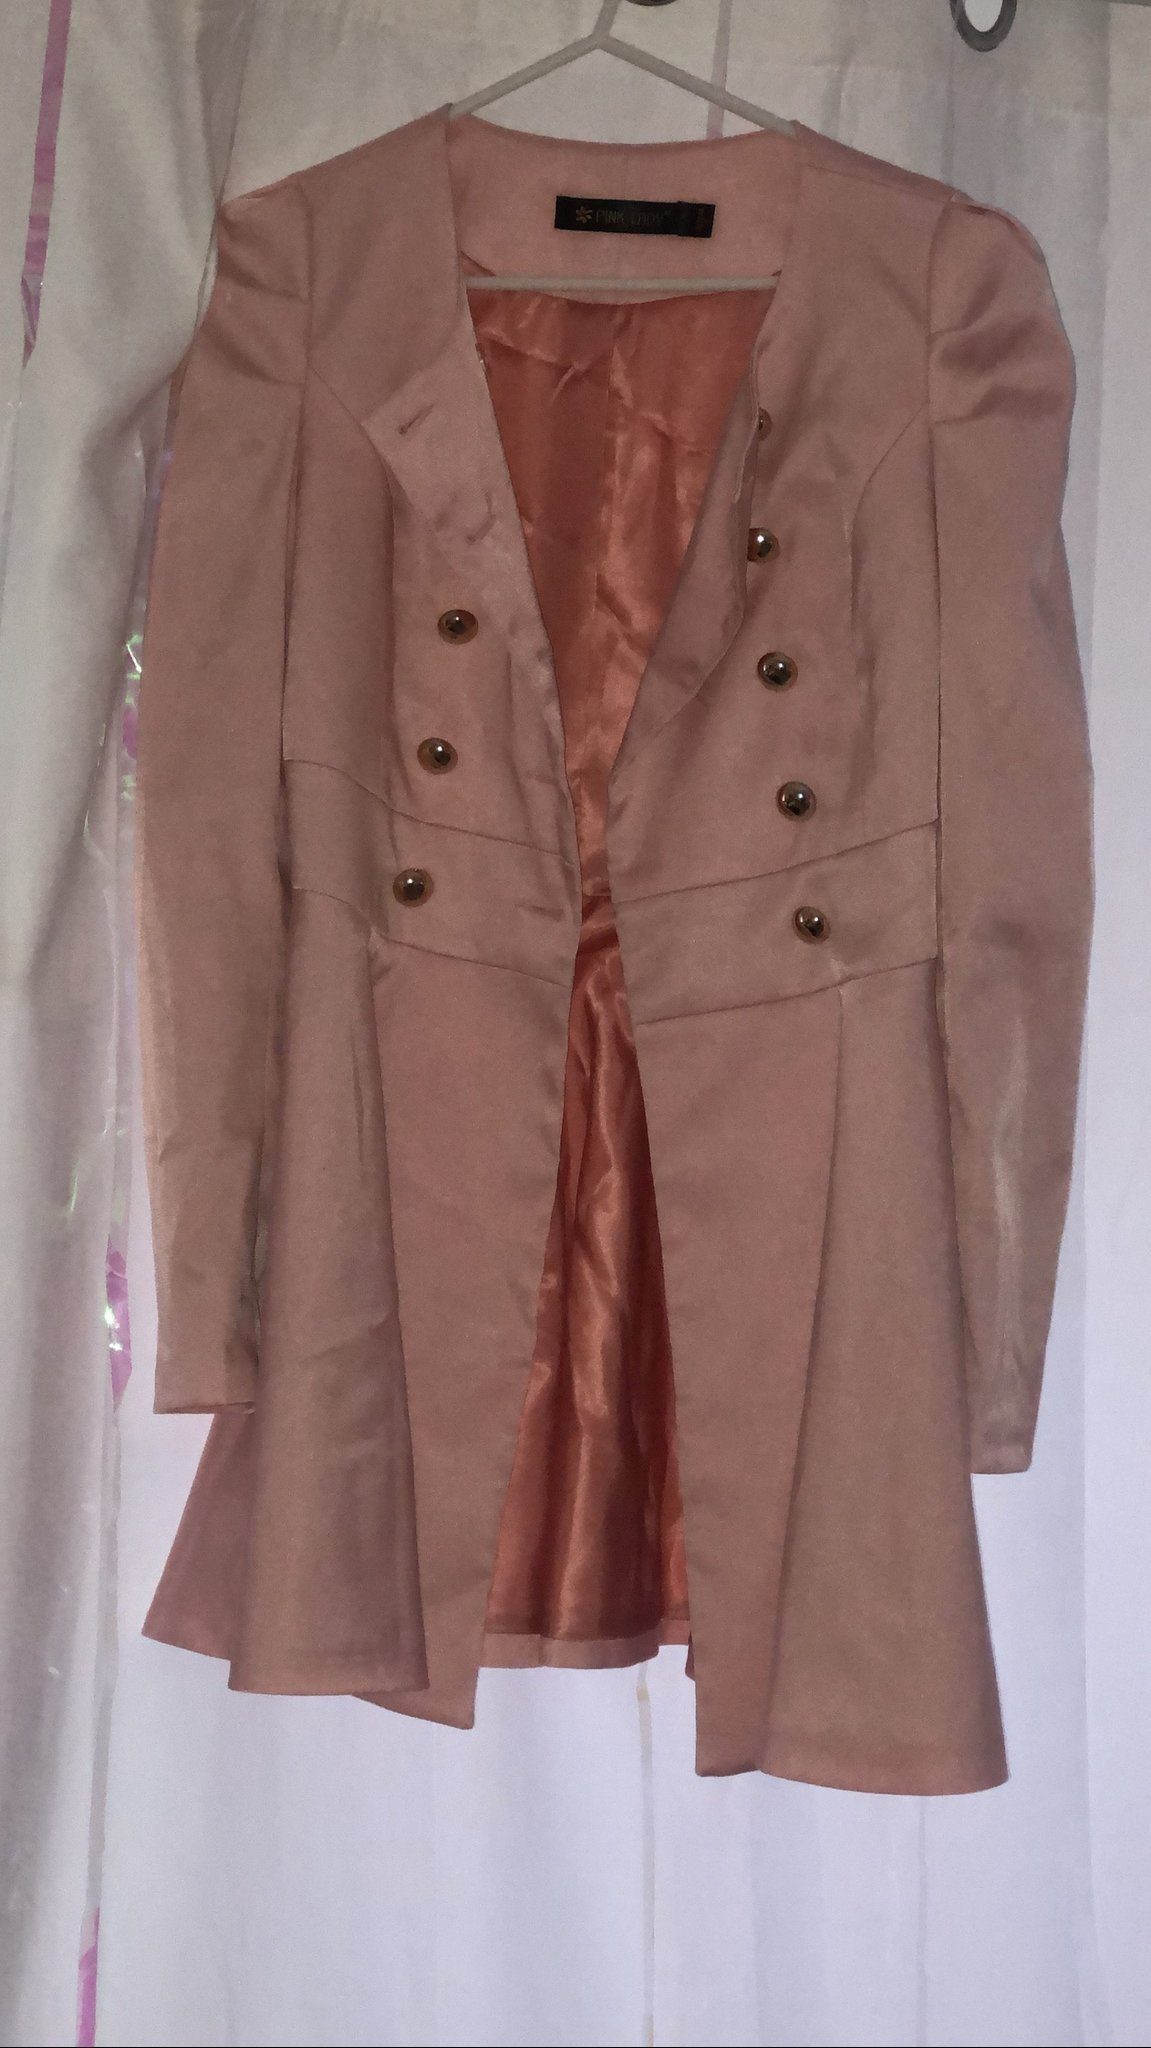 SHEINSIDE Pink Long Sleeve Double Breasted Flare Trench Coat Långärmad Rosa S NY